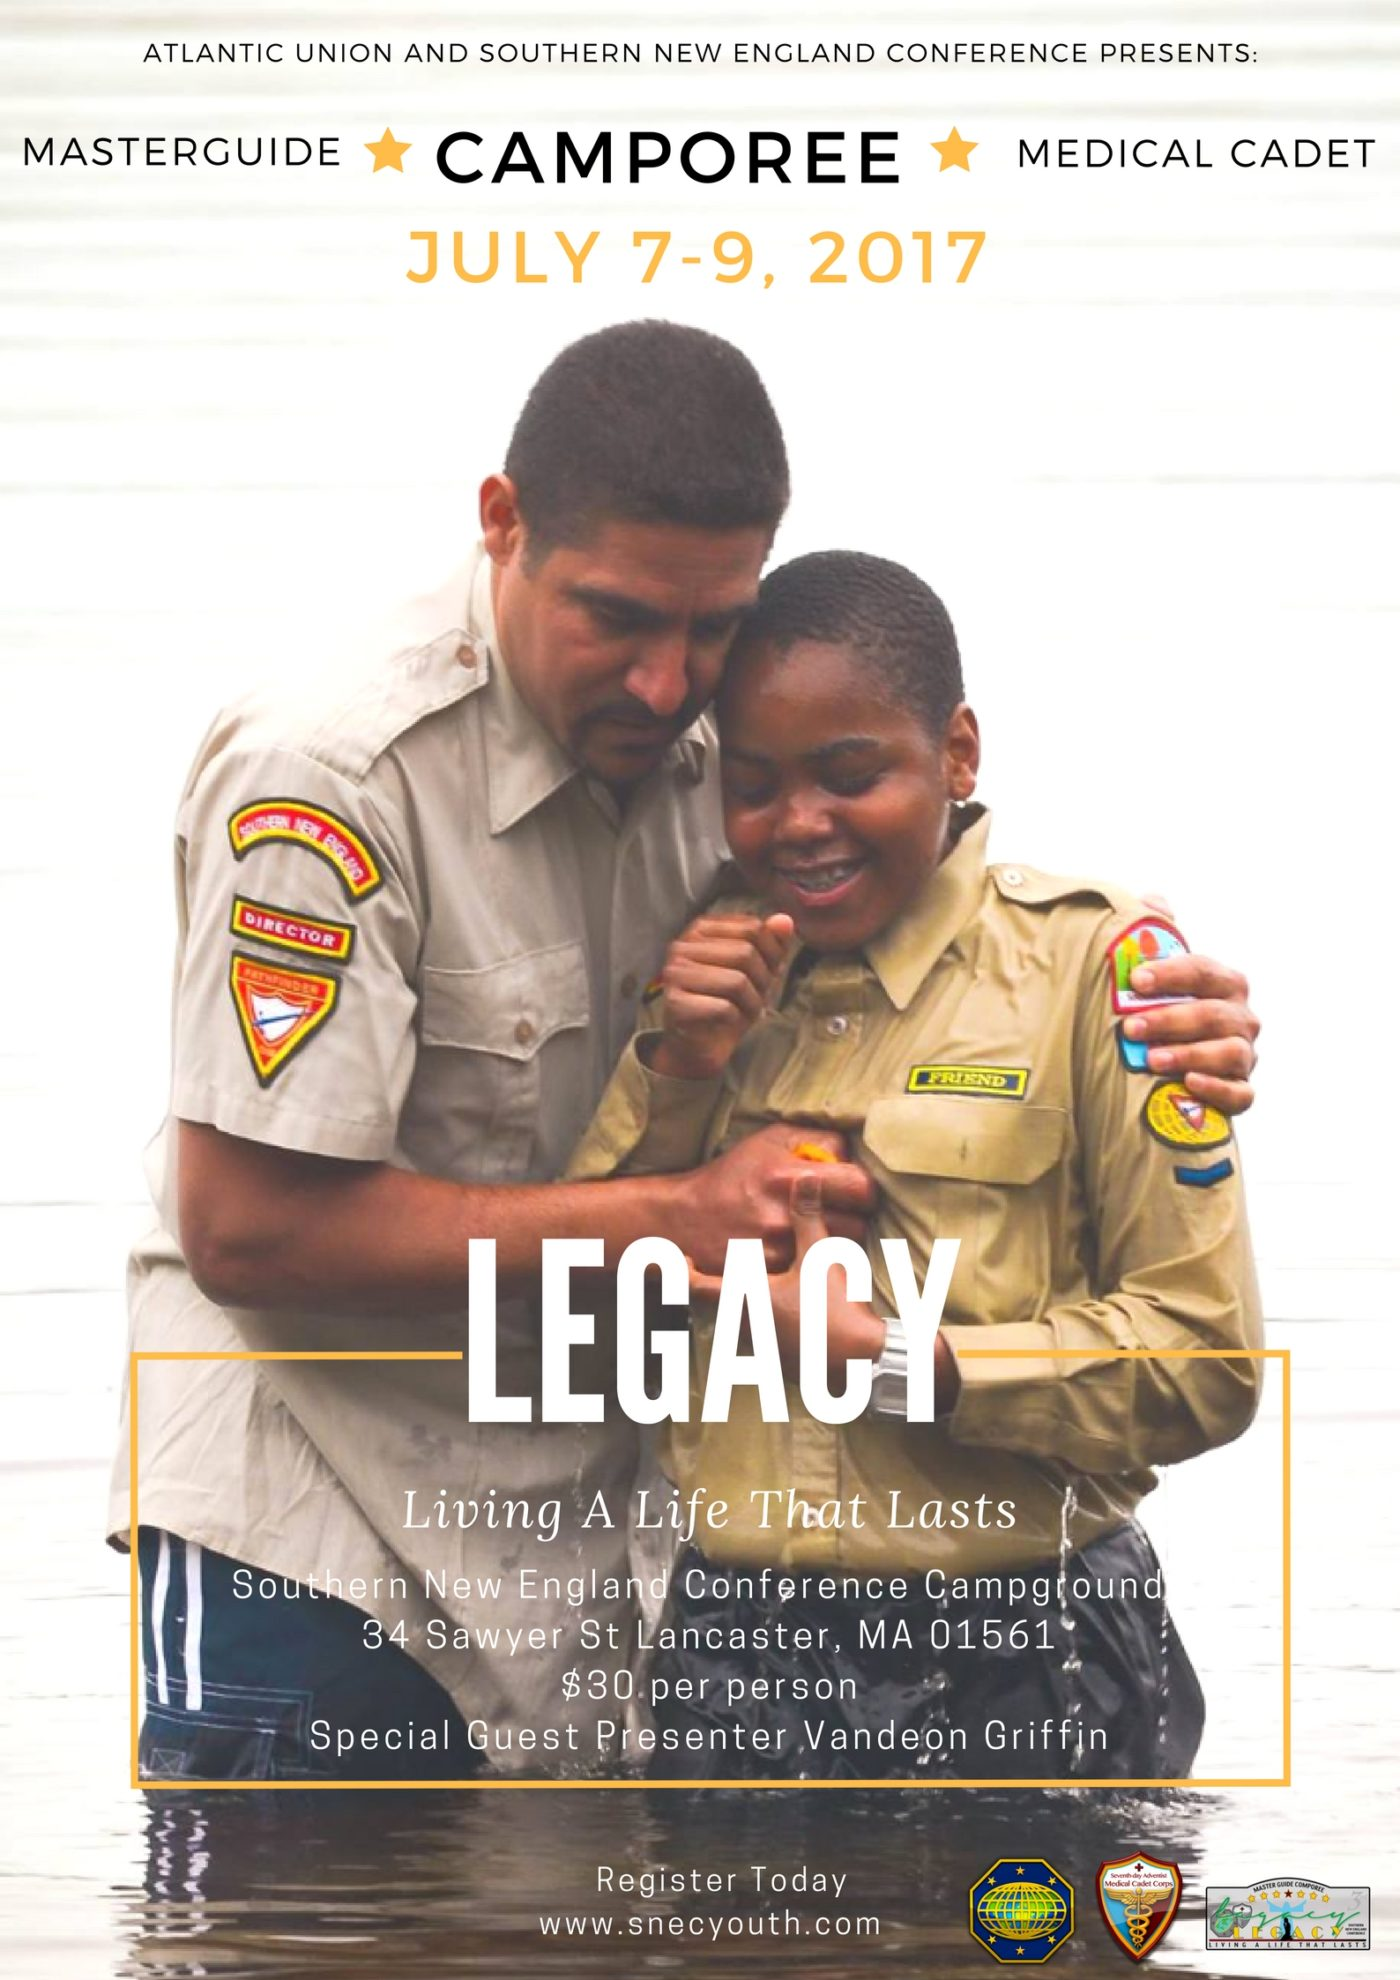 Legacy Master Guide Amp Medical Cadet Camporee Snec Youth